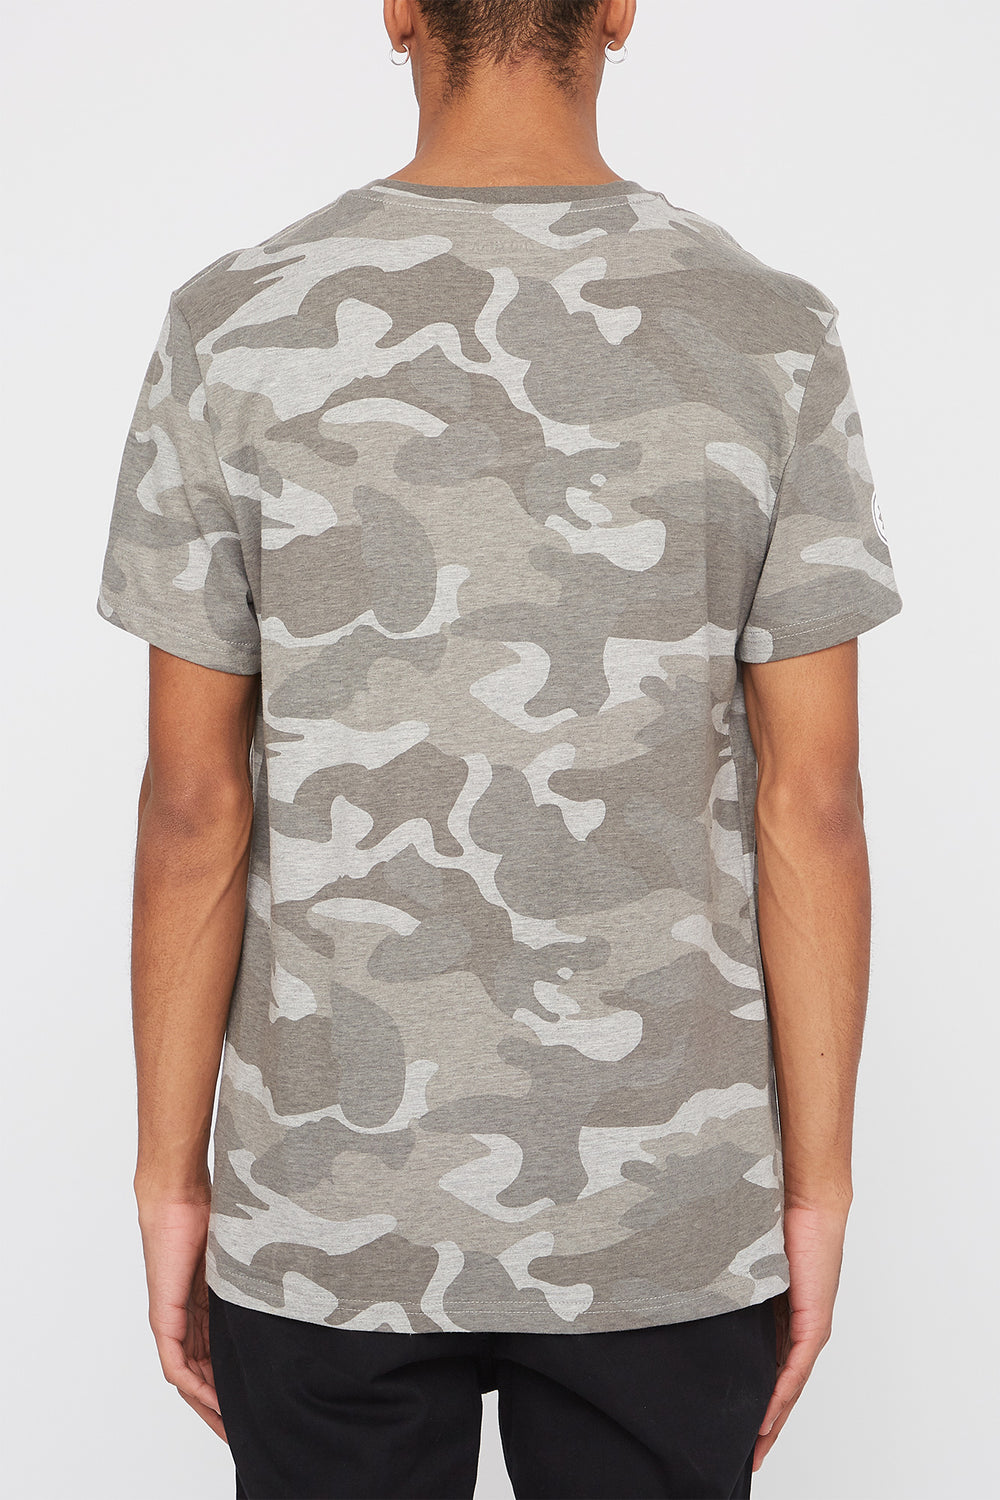 Zoo York Mens Camo Logo T-Shirt Gingham